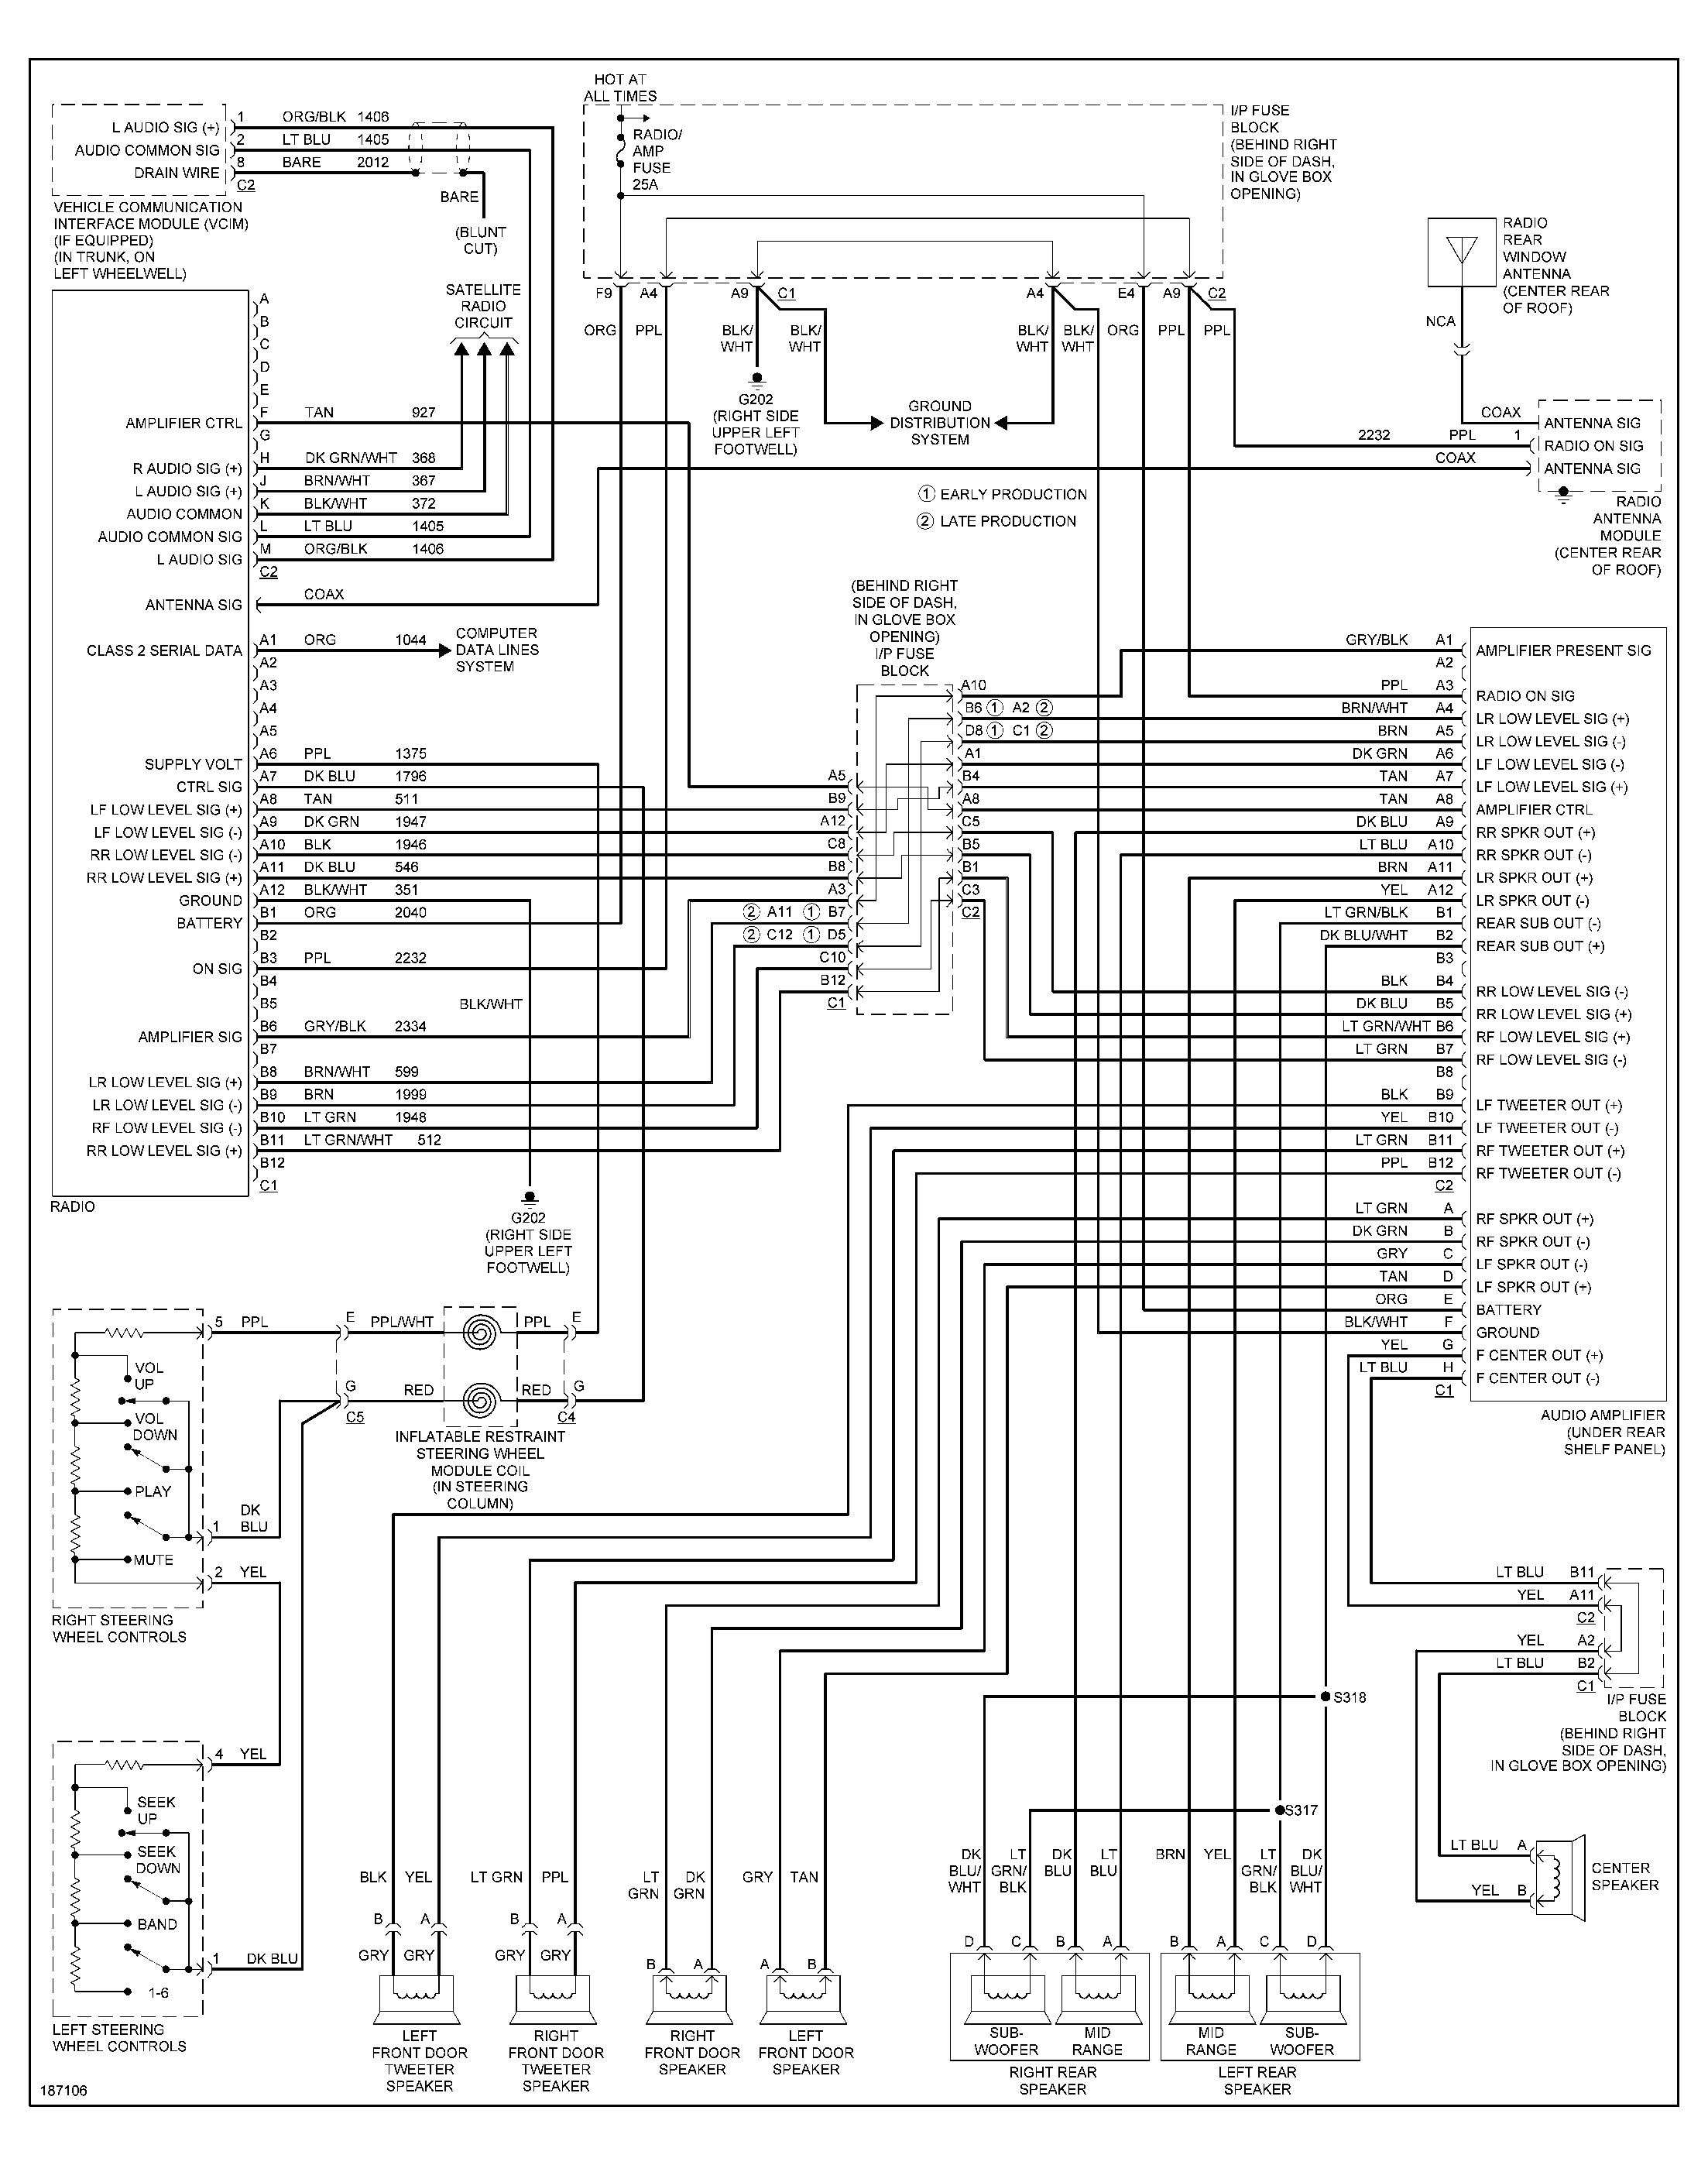 Rear Window Wiring Diagram 2003 Grand Prix 84 85 Toyota Coil Ignitor Wiring Schematics For Wiring Diagram Schematics